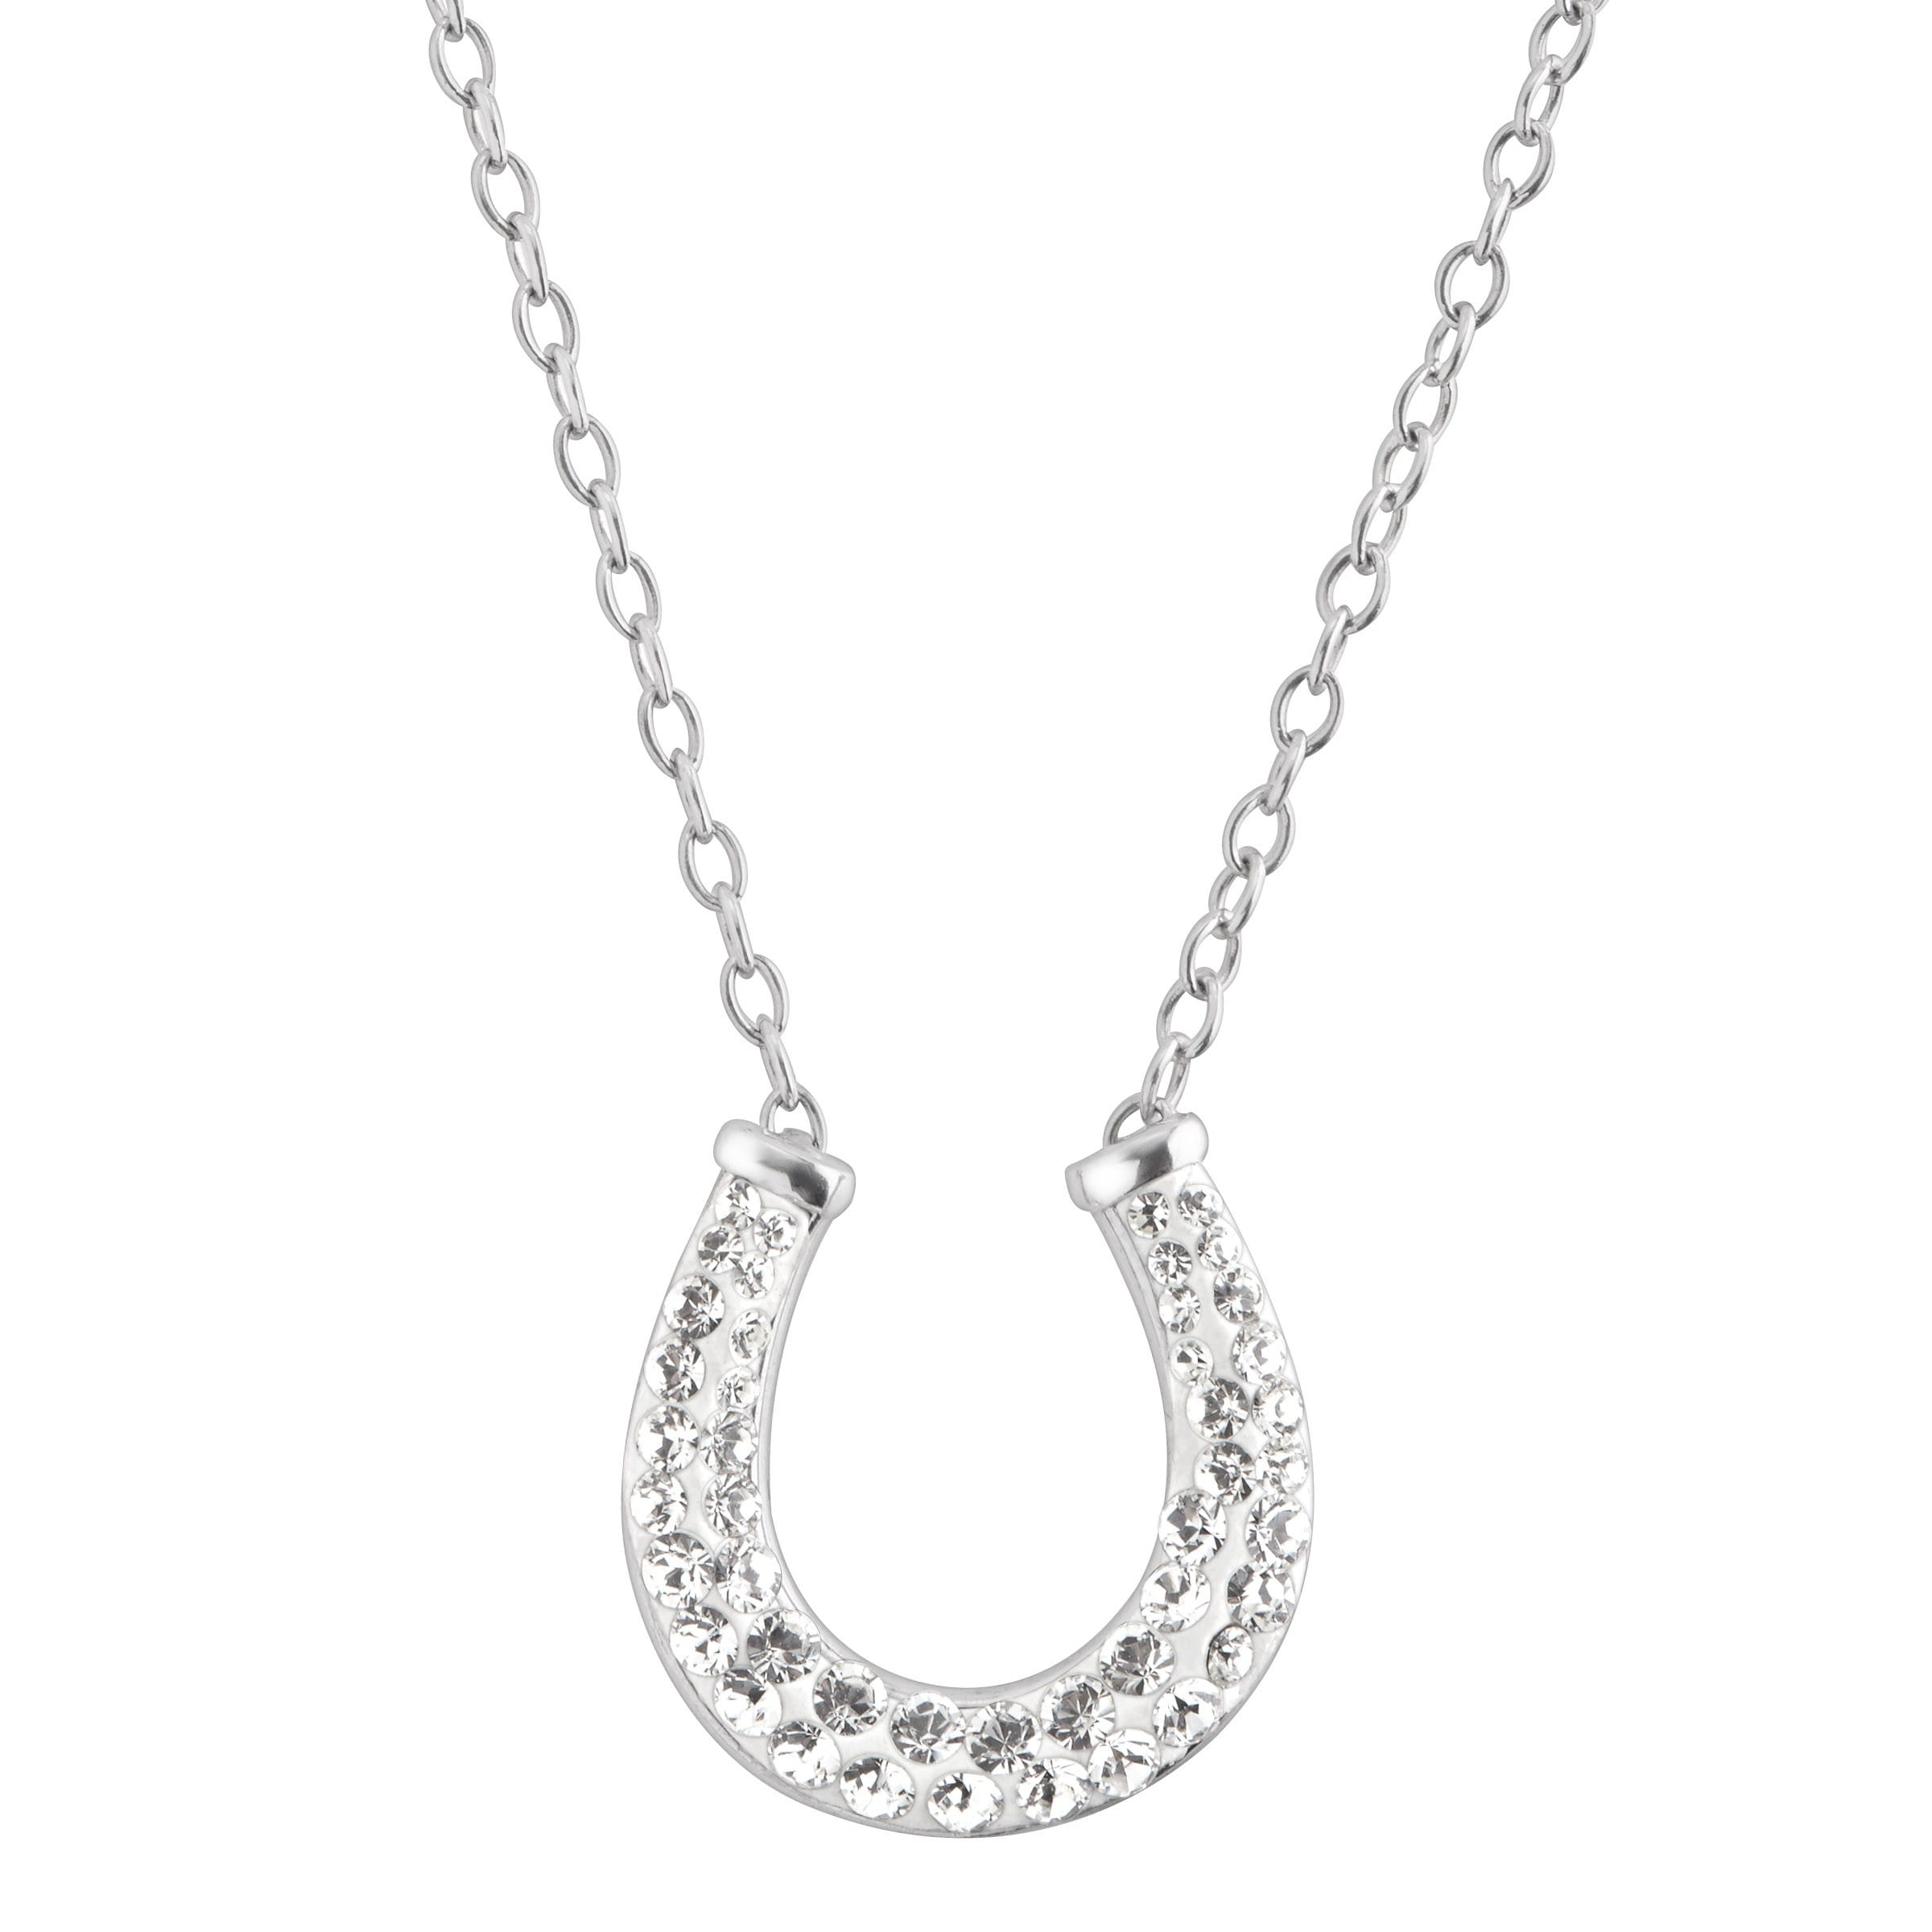 products necklace cz rg zirconia cubic shop shoe horse tangerine horseshoe pendant by jewelry